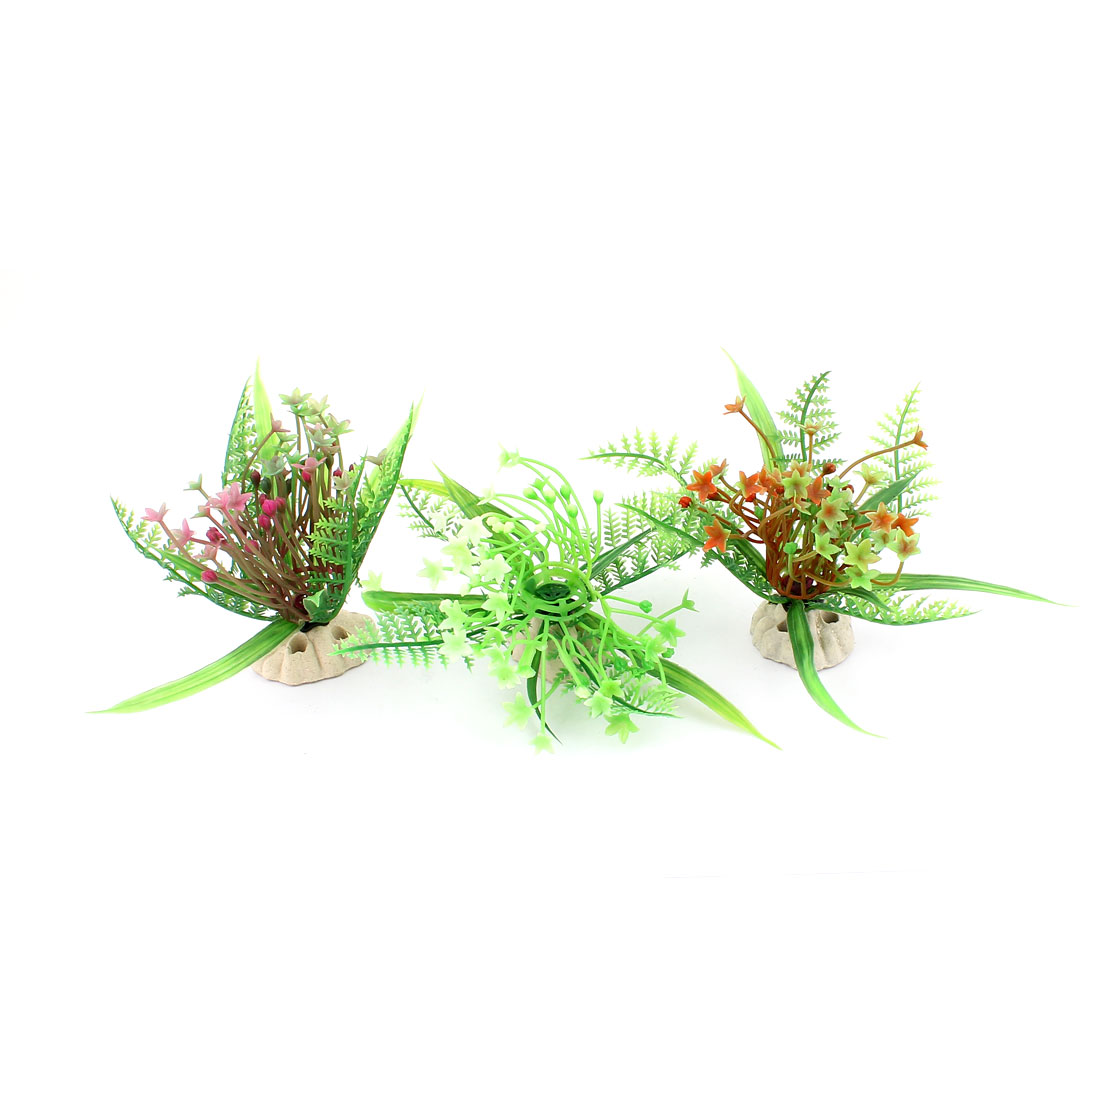 Plastic Aquascaping Underwater Plant Grass Aquarium Decor 3pcs